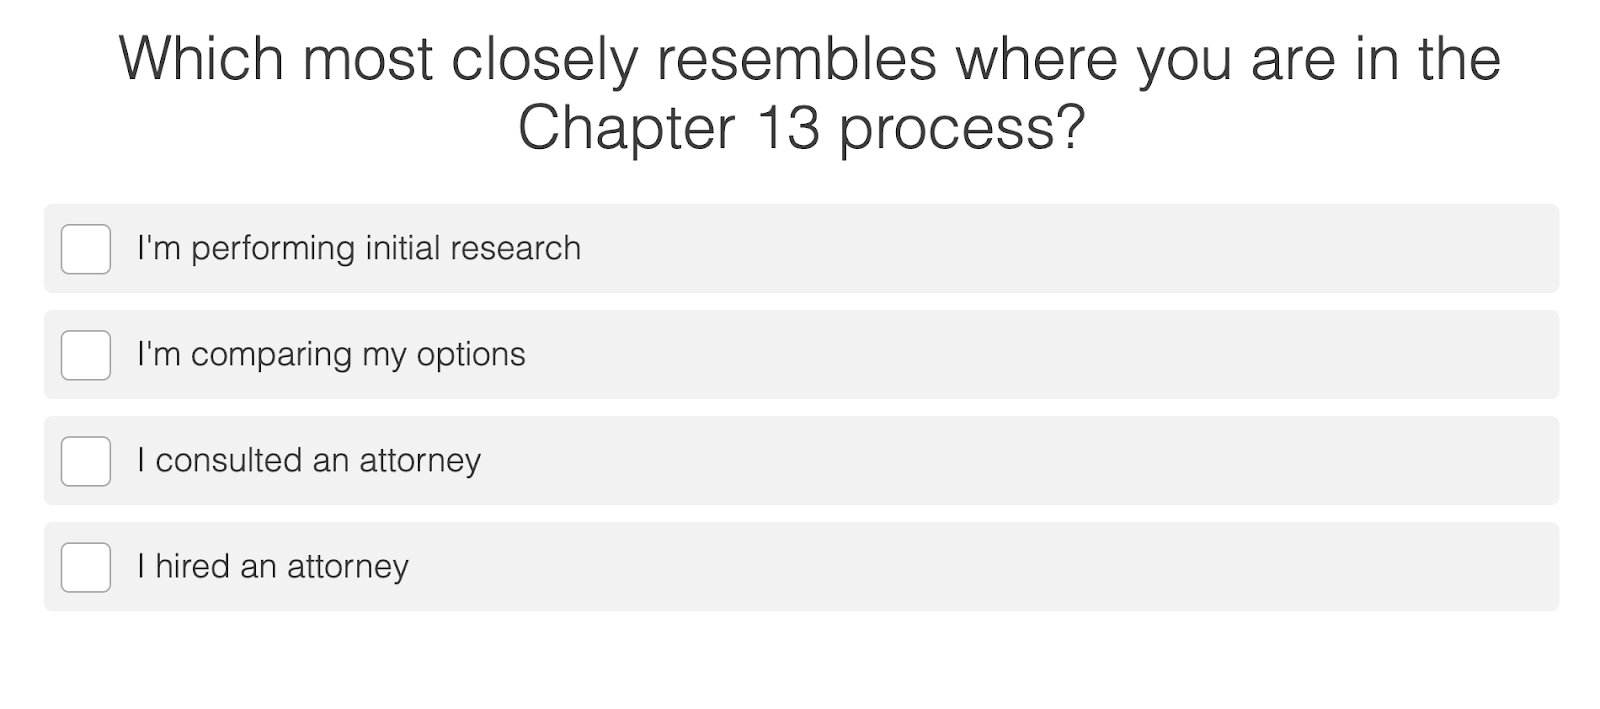 quiz question to identify where a person is in Ch 13 bankruptcy process